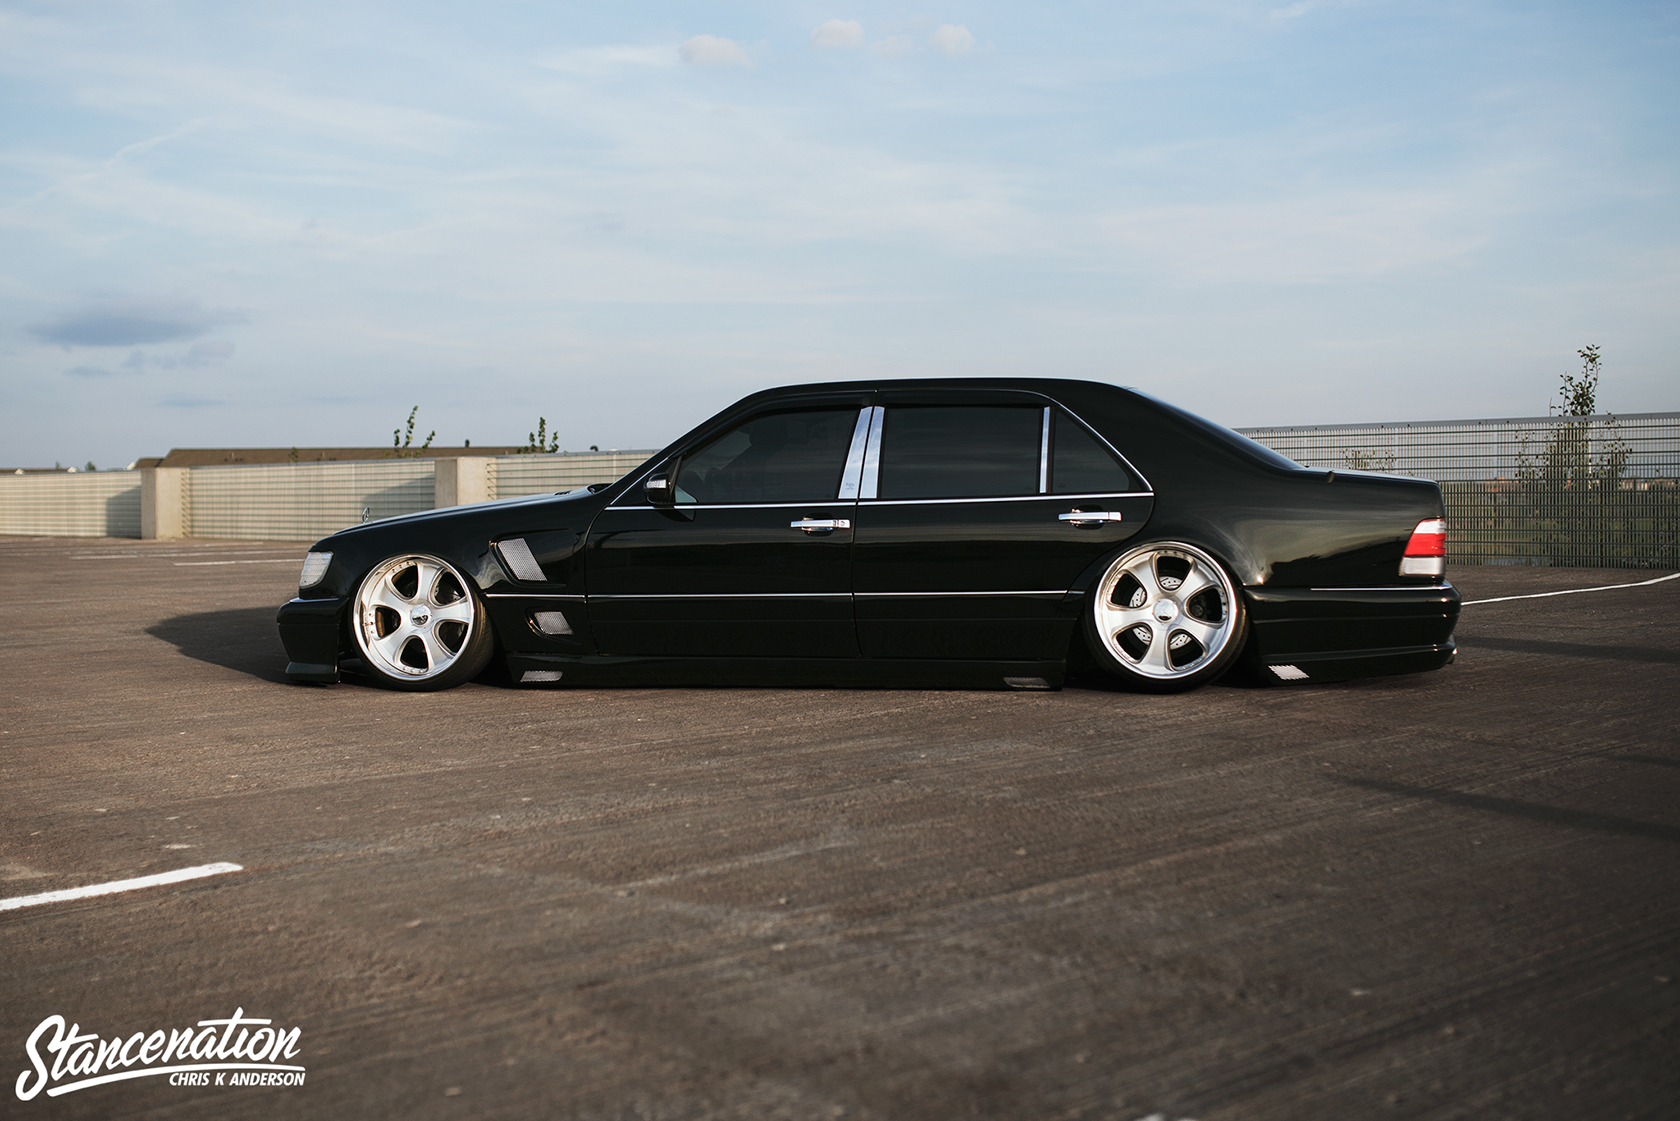 Minnesota masterpiece macaulay 39 s vip styled s500 benz for Mercedes benz vip club black leather